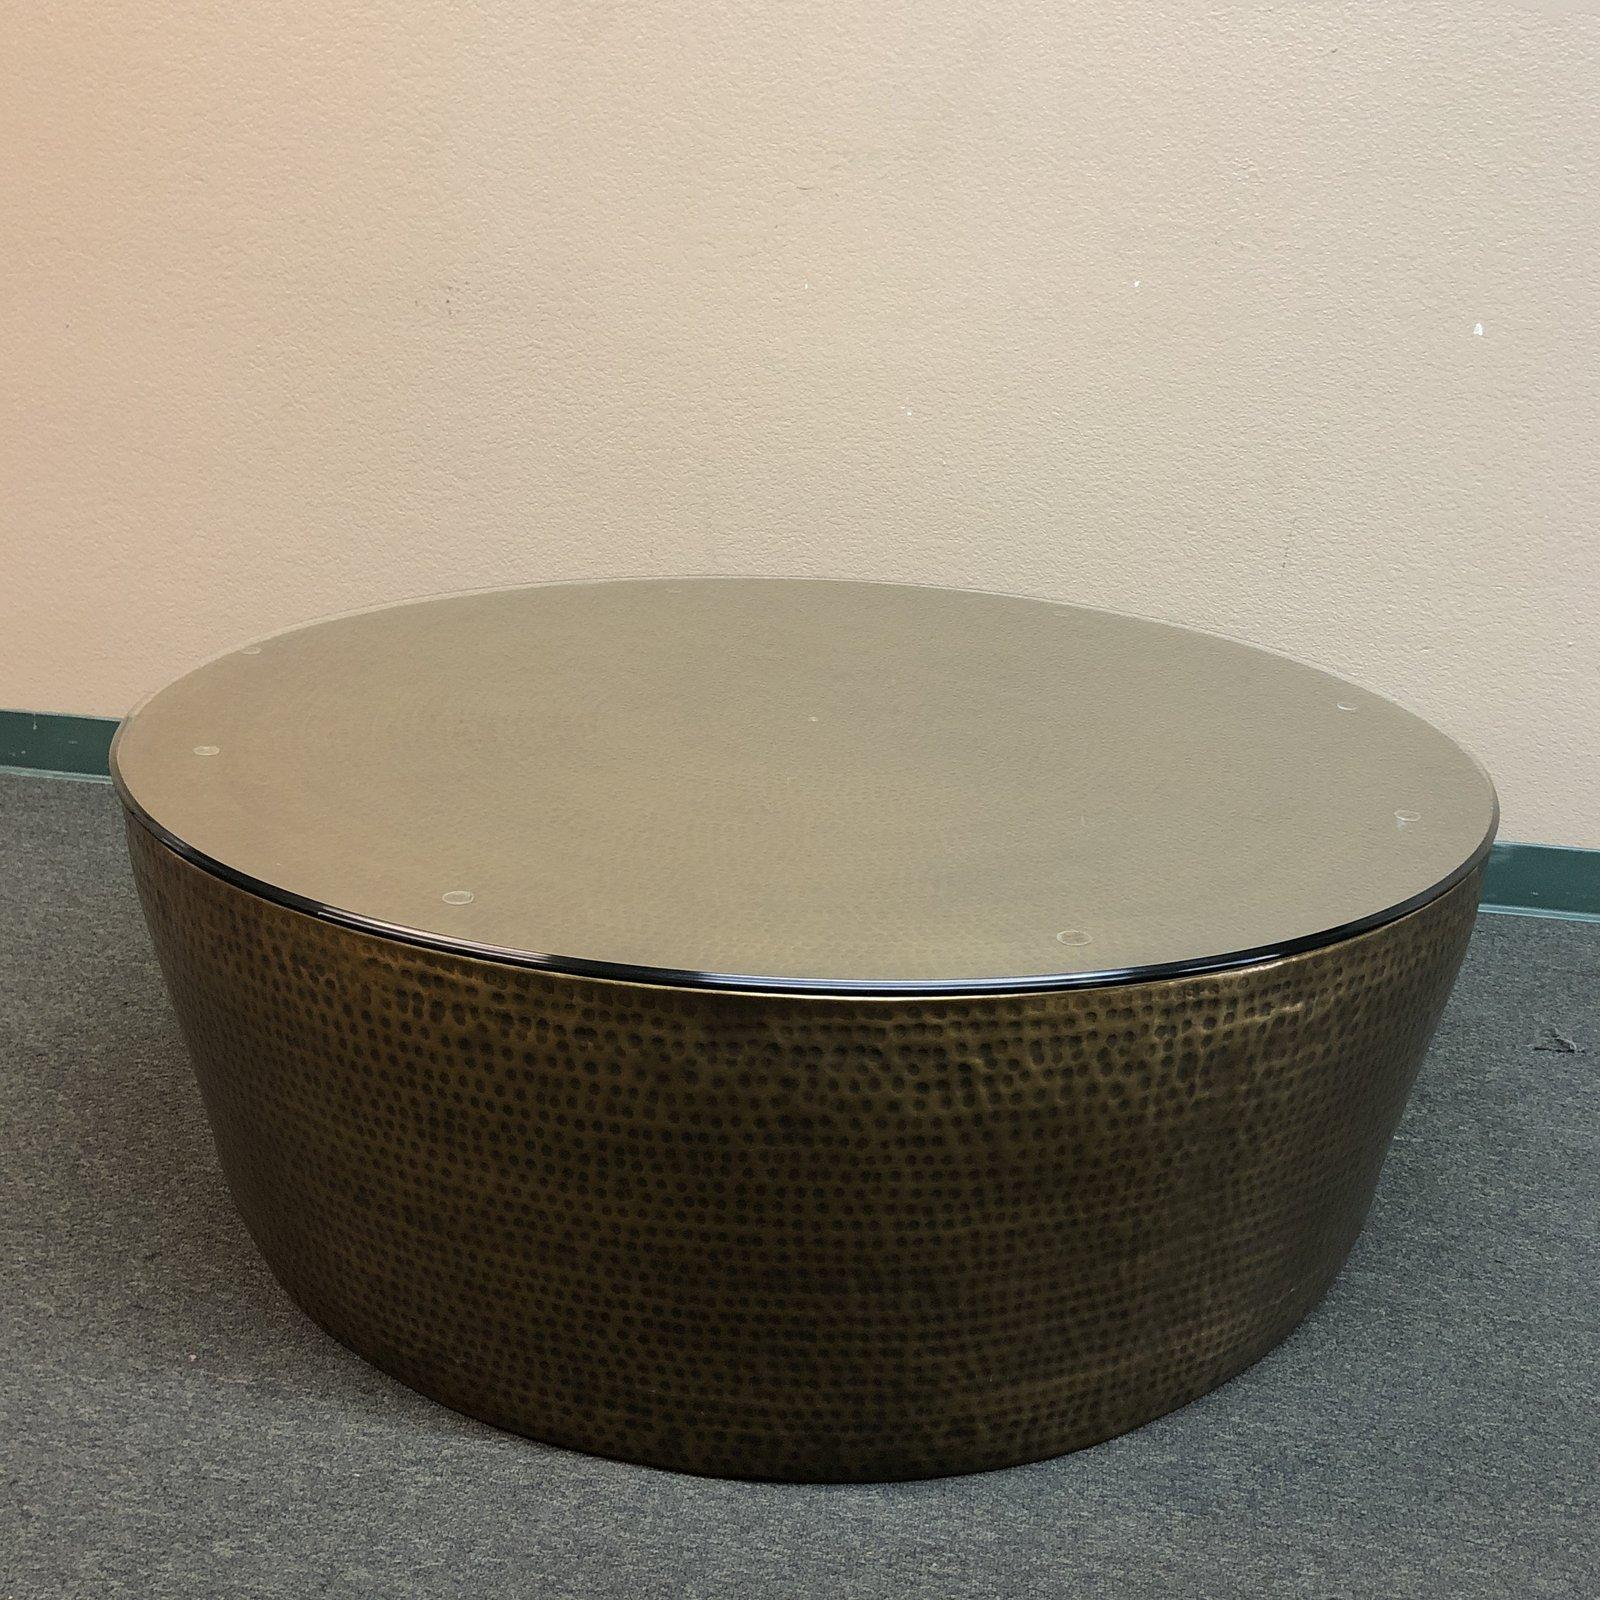 Peachy Round Hammered Brass Coffee Table For Sale At 1Stdibs Gamerscity Chair Design For Home Gamerscityorg